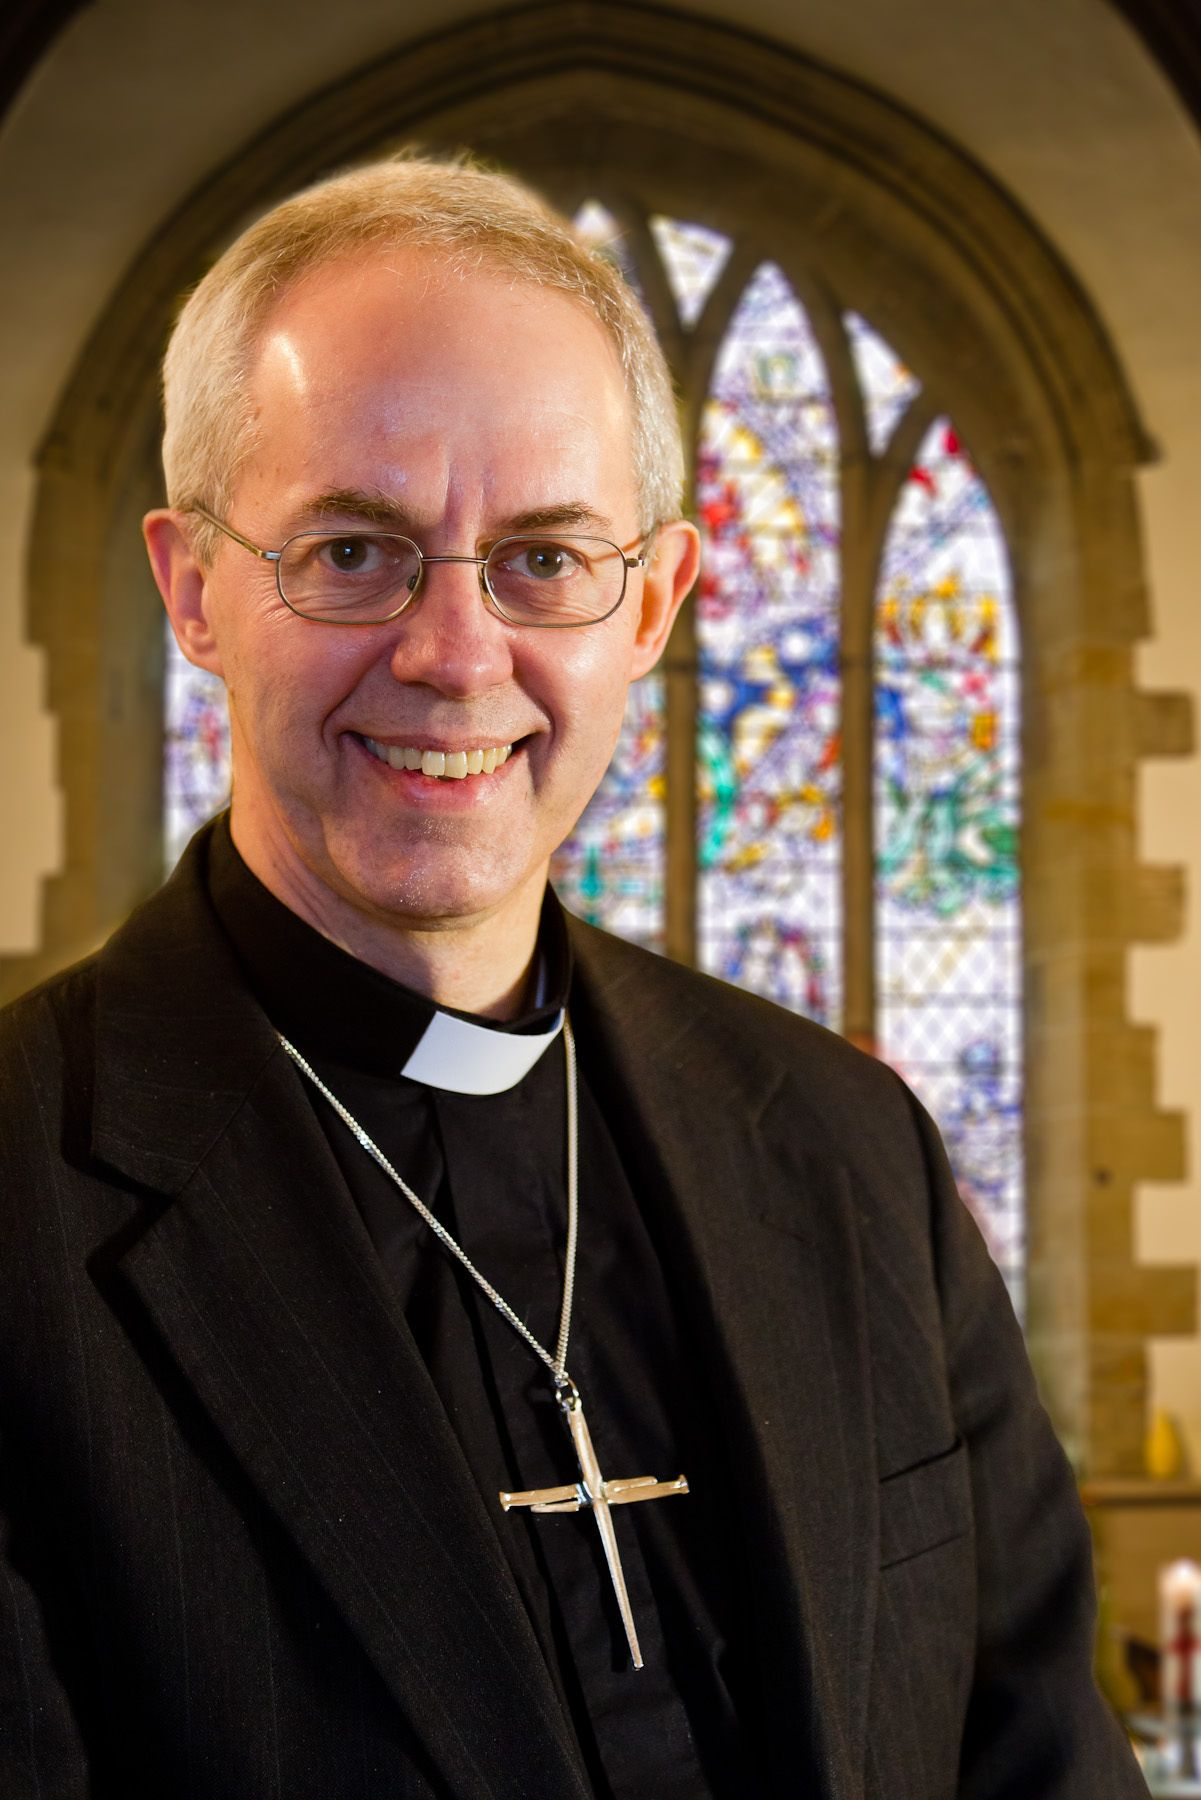 "In this picture taken on December 16, 2012 the Bishop of Durham Justin Welby poses for a photograph in Durham. Former oil company executive Justin Welby has accepted the post of Archbishop of Canterbury, the spiritual leader of the world's tens of millions of Anglicans, reports said on November 8, 2012. Welby, 56, the current Bishop of Durham, will take over from incumbent Rowan Williams when he retires as head of the Church of England next month after a decade in the post, British newspapers and broadcasters reported. "" RESTRICTED TO EDITORIAL USE - MANDATORY CREDIT "" AFP PHOTO / Aegies Associates / Keith Blundy "" - NO MARKETING NO ADVERTISING CAMPAIGNS - DISTRIBUTED AS A SERVICE TO CLIENTS """